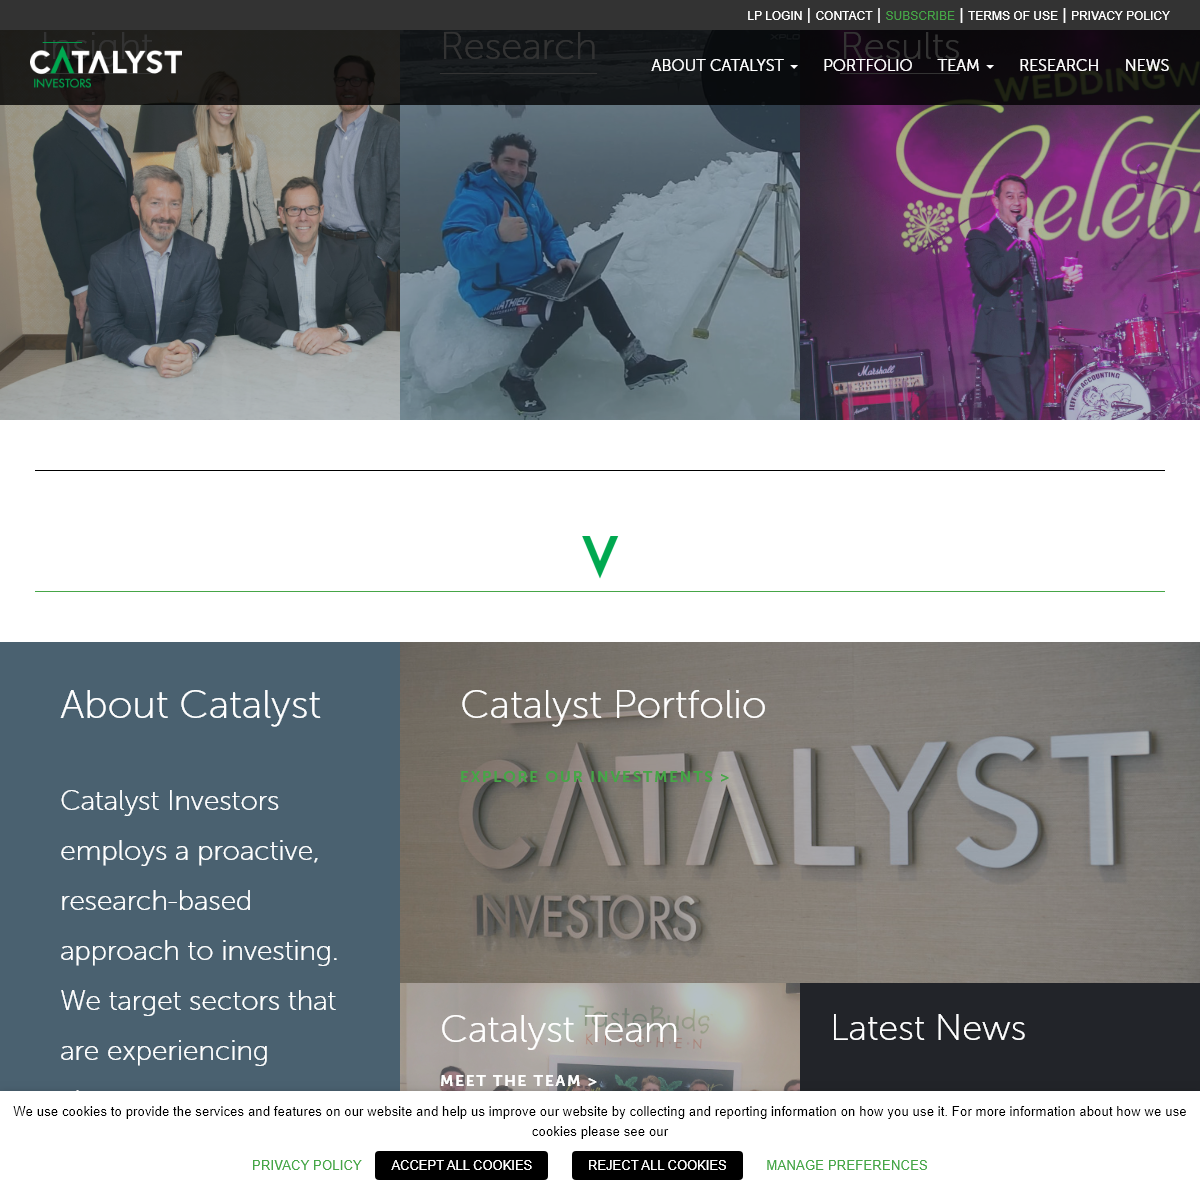 Catalyst Investors - Growth Equity